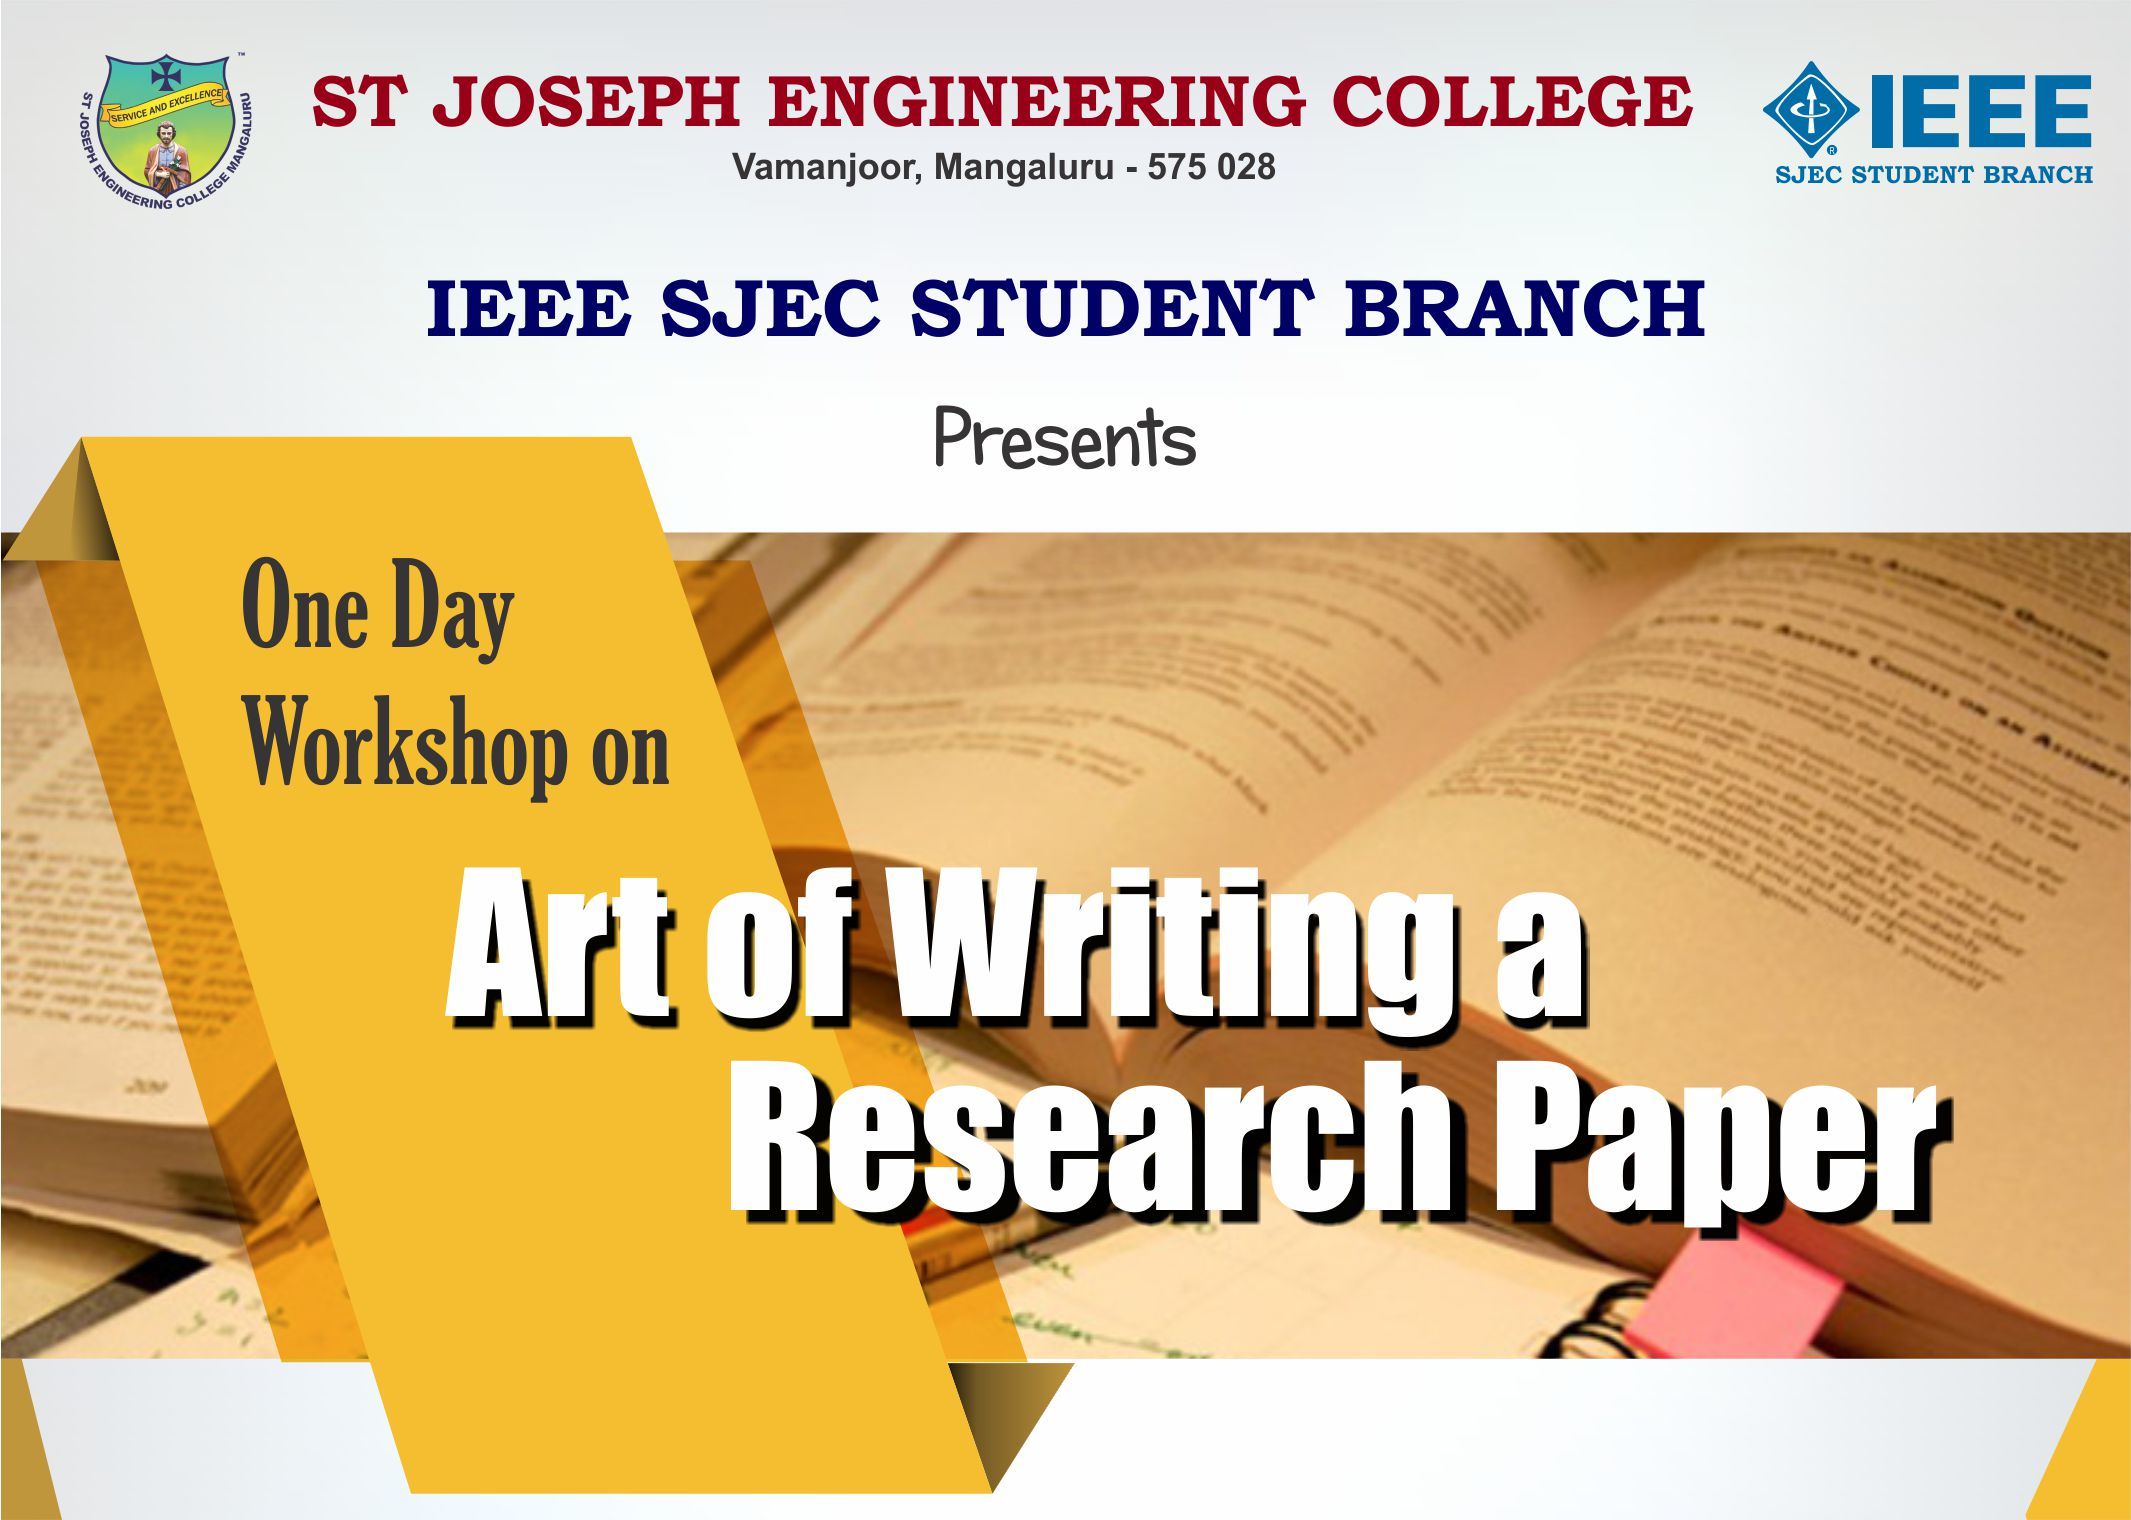 005 Research Paper About Writing Workshop Rare Skills Pdf Report Process Creative Full